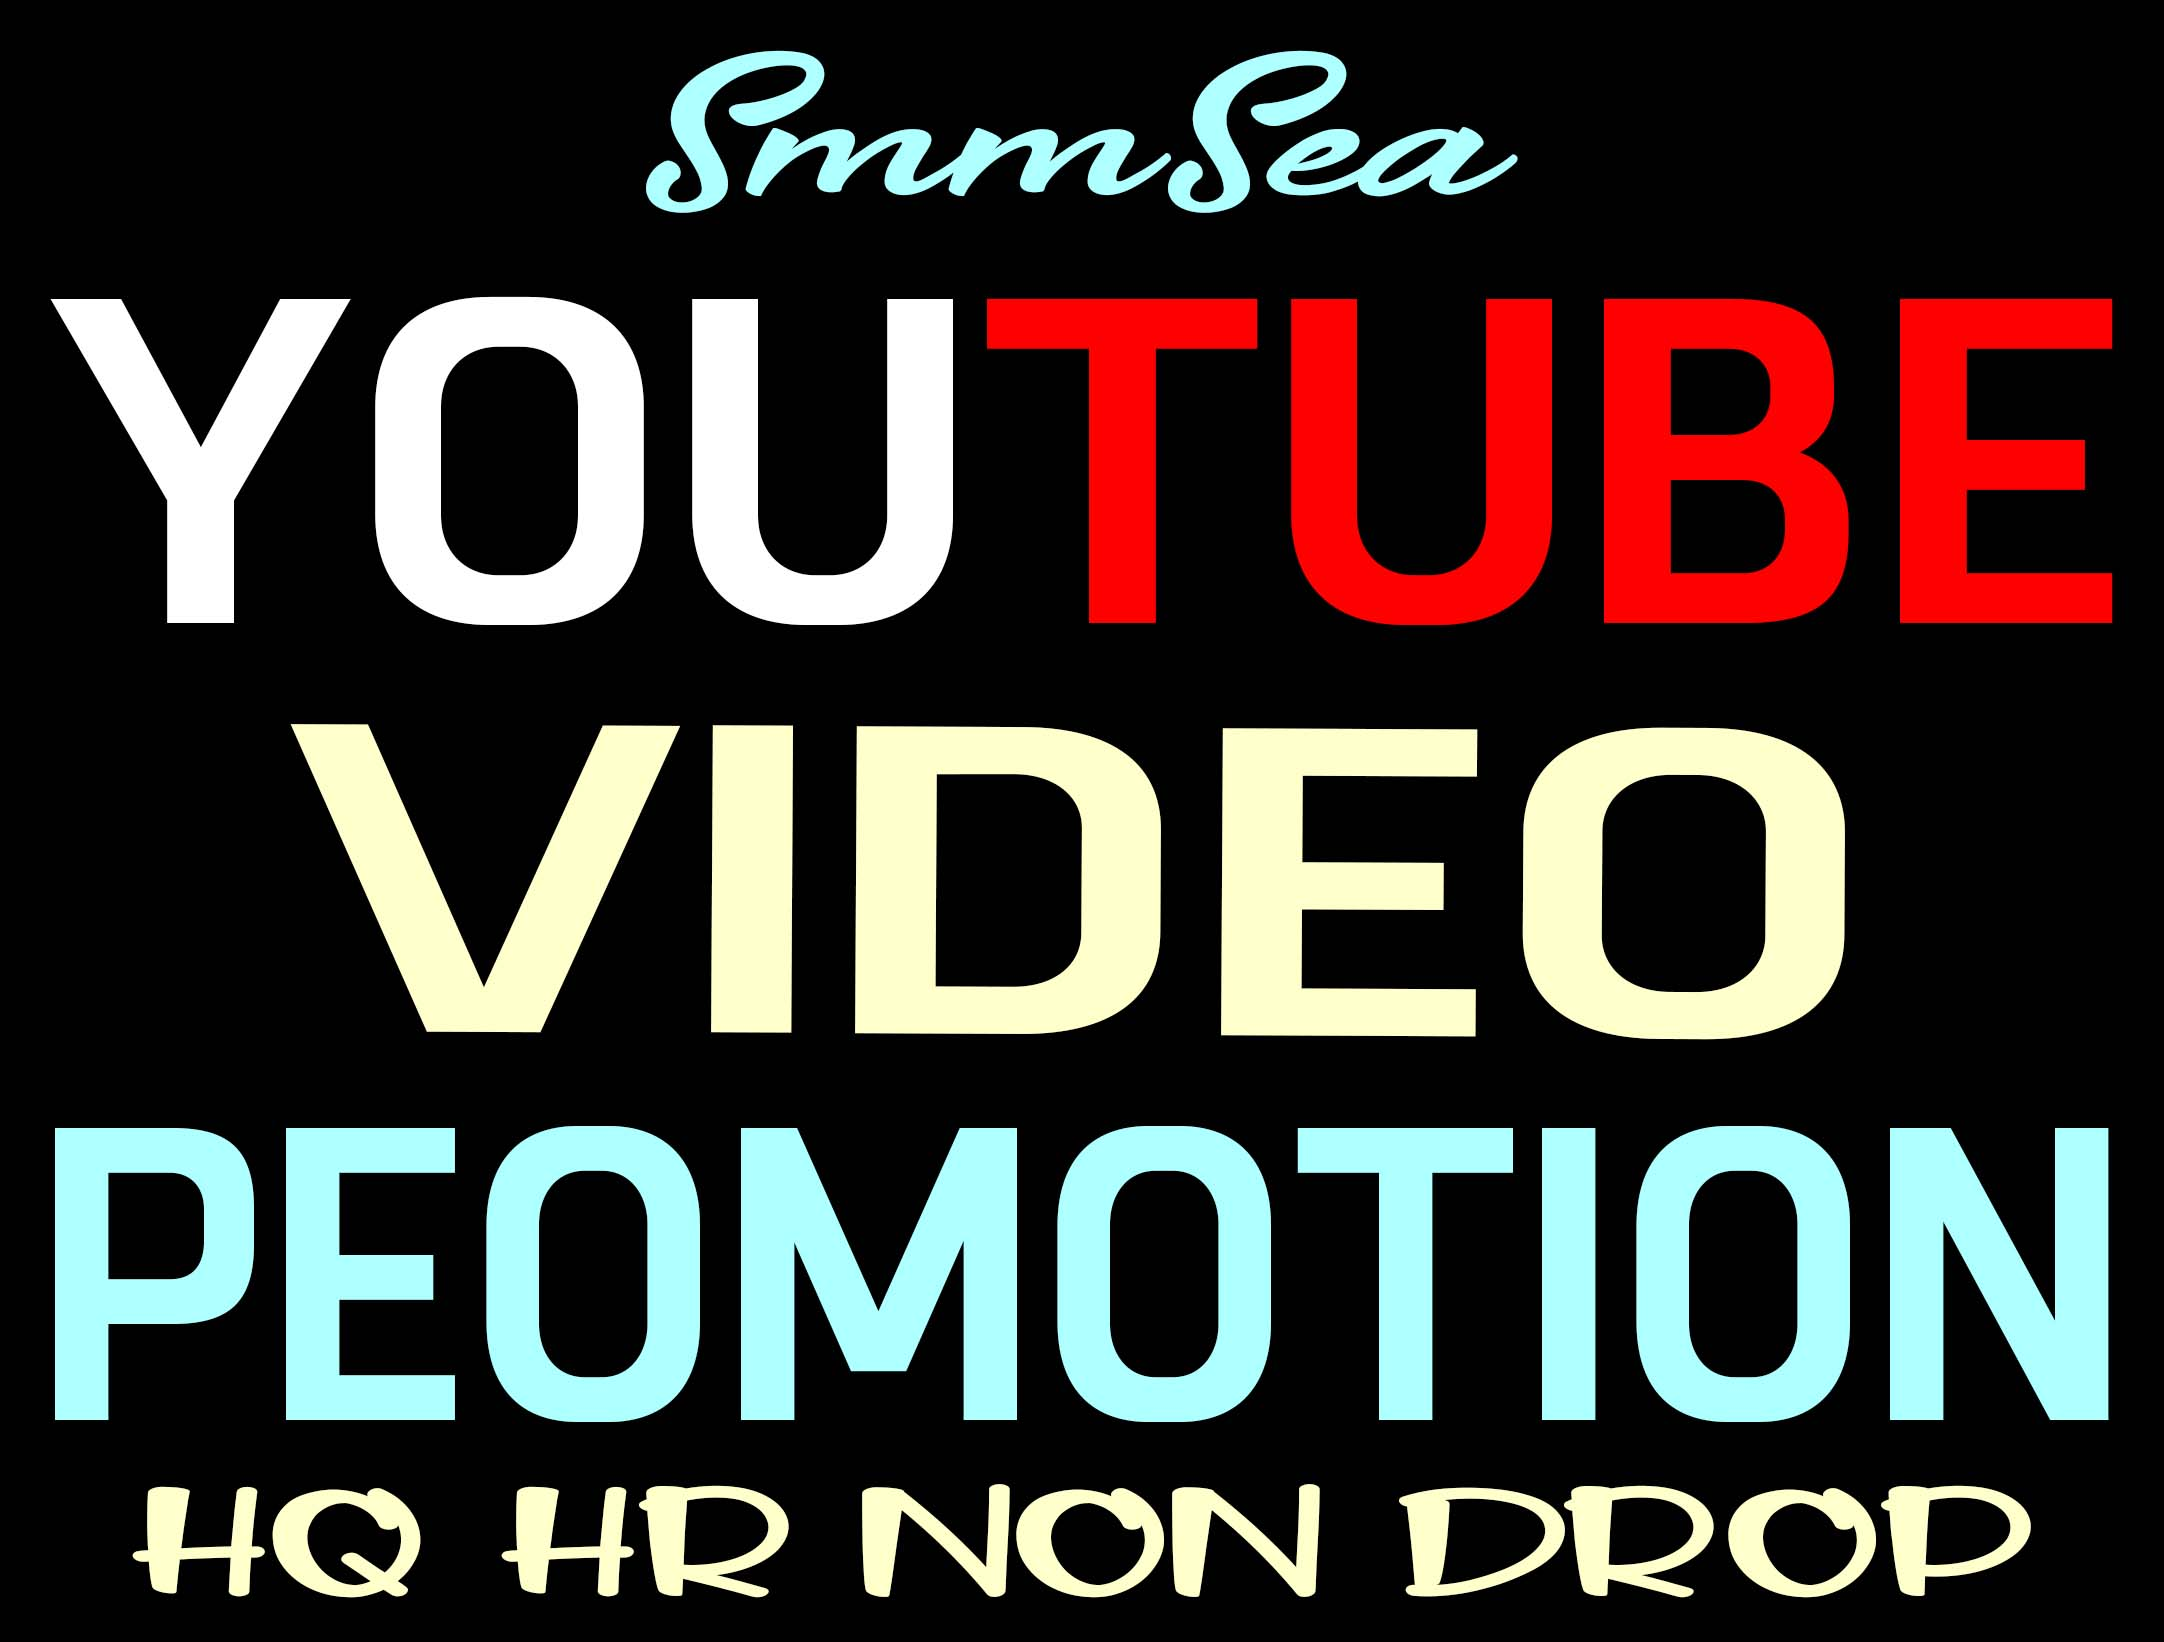 NON DROP YOUTUBE VIDEO PROMOTION INSTANT HIGH QUALITY